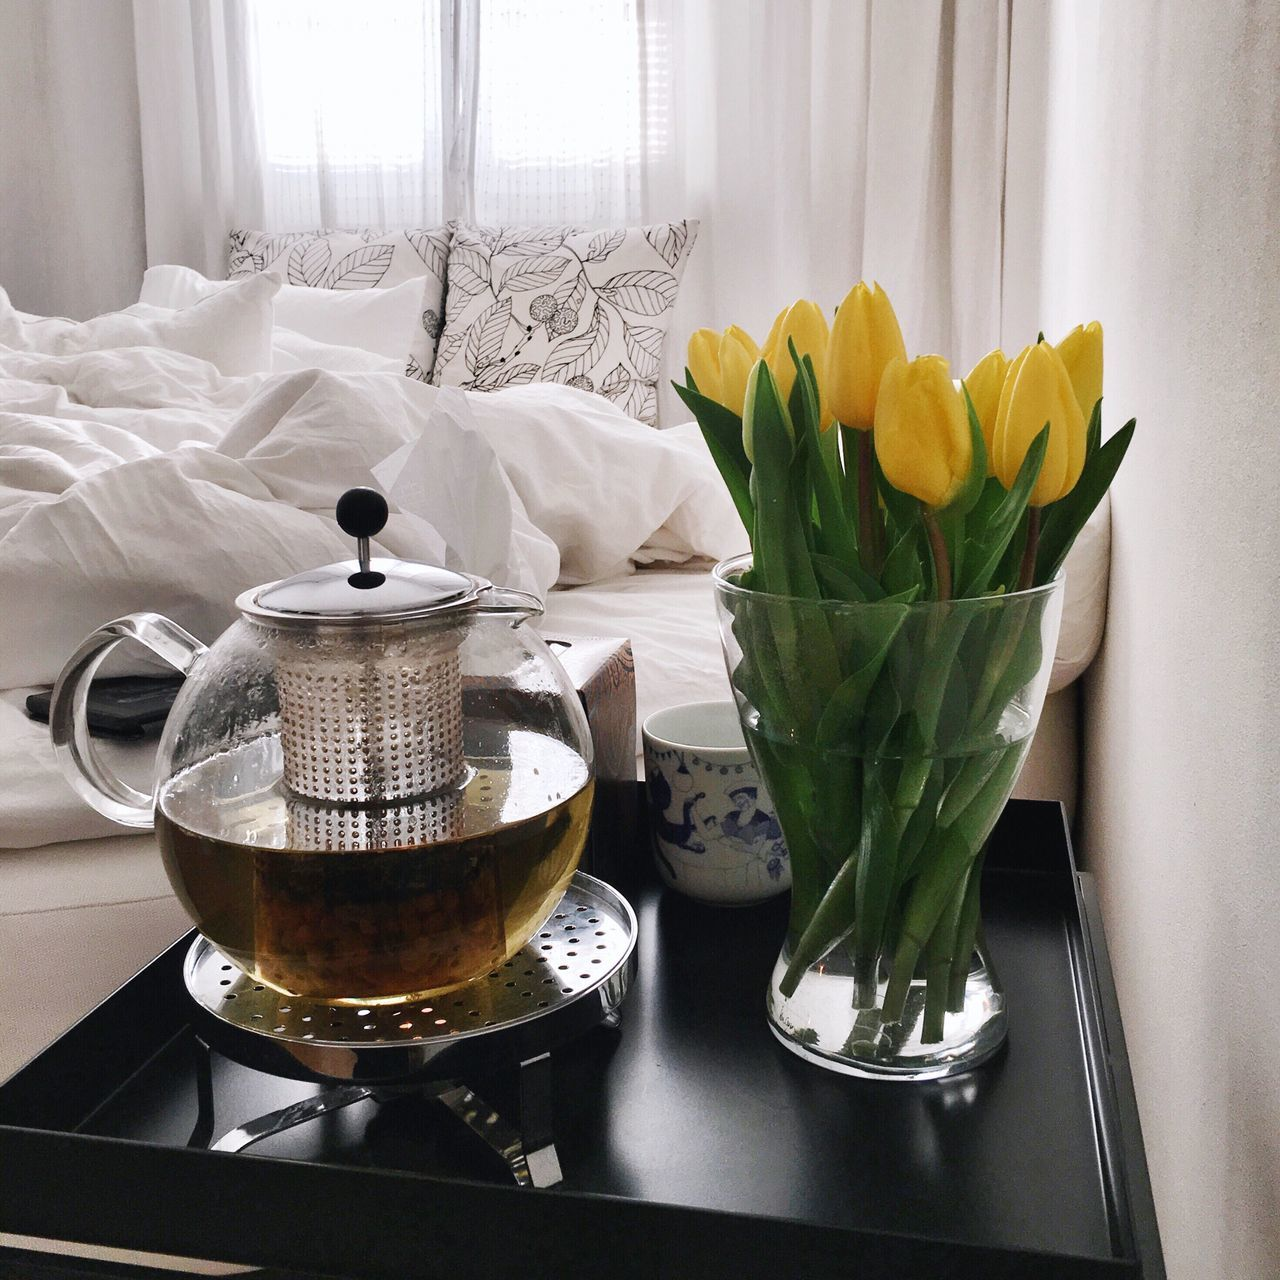 Morning Rituals A Slow Start Bedroom Tea Time